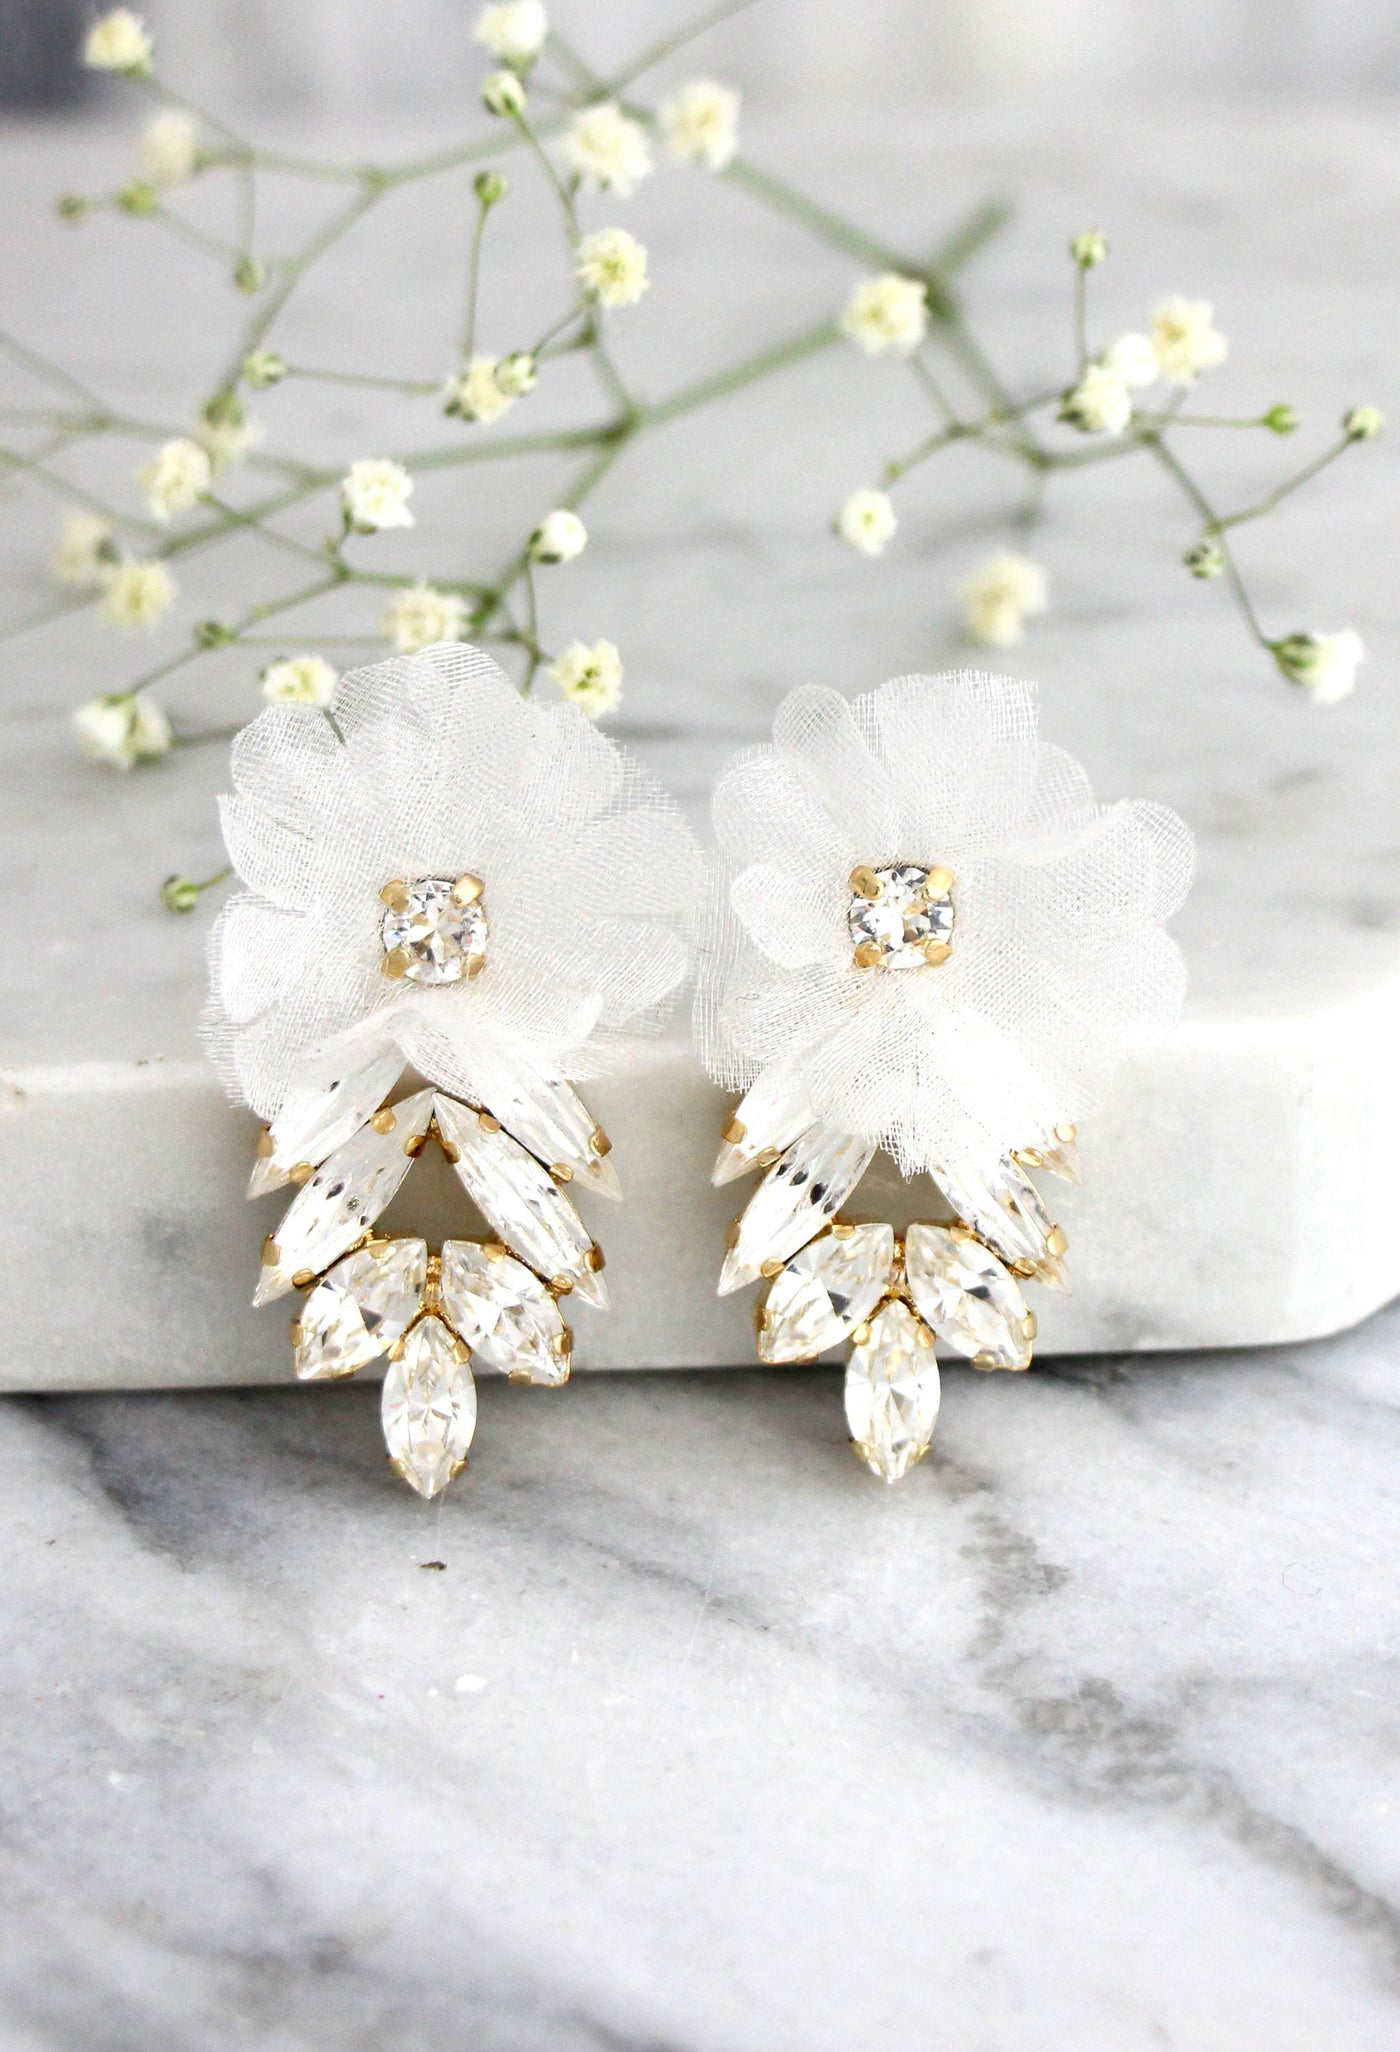 Spring Flower Clear Crystal Swarovski Cluster Earrings